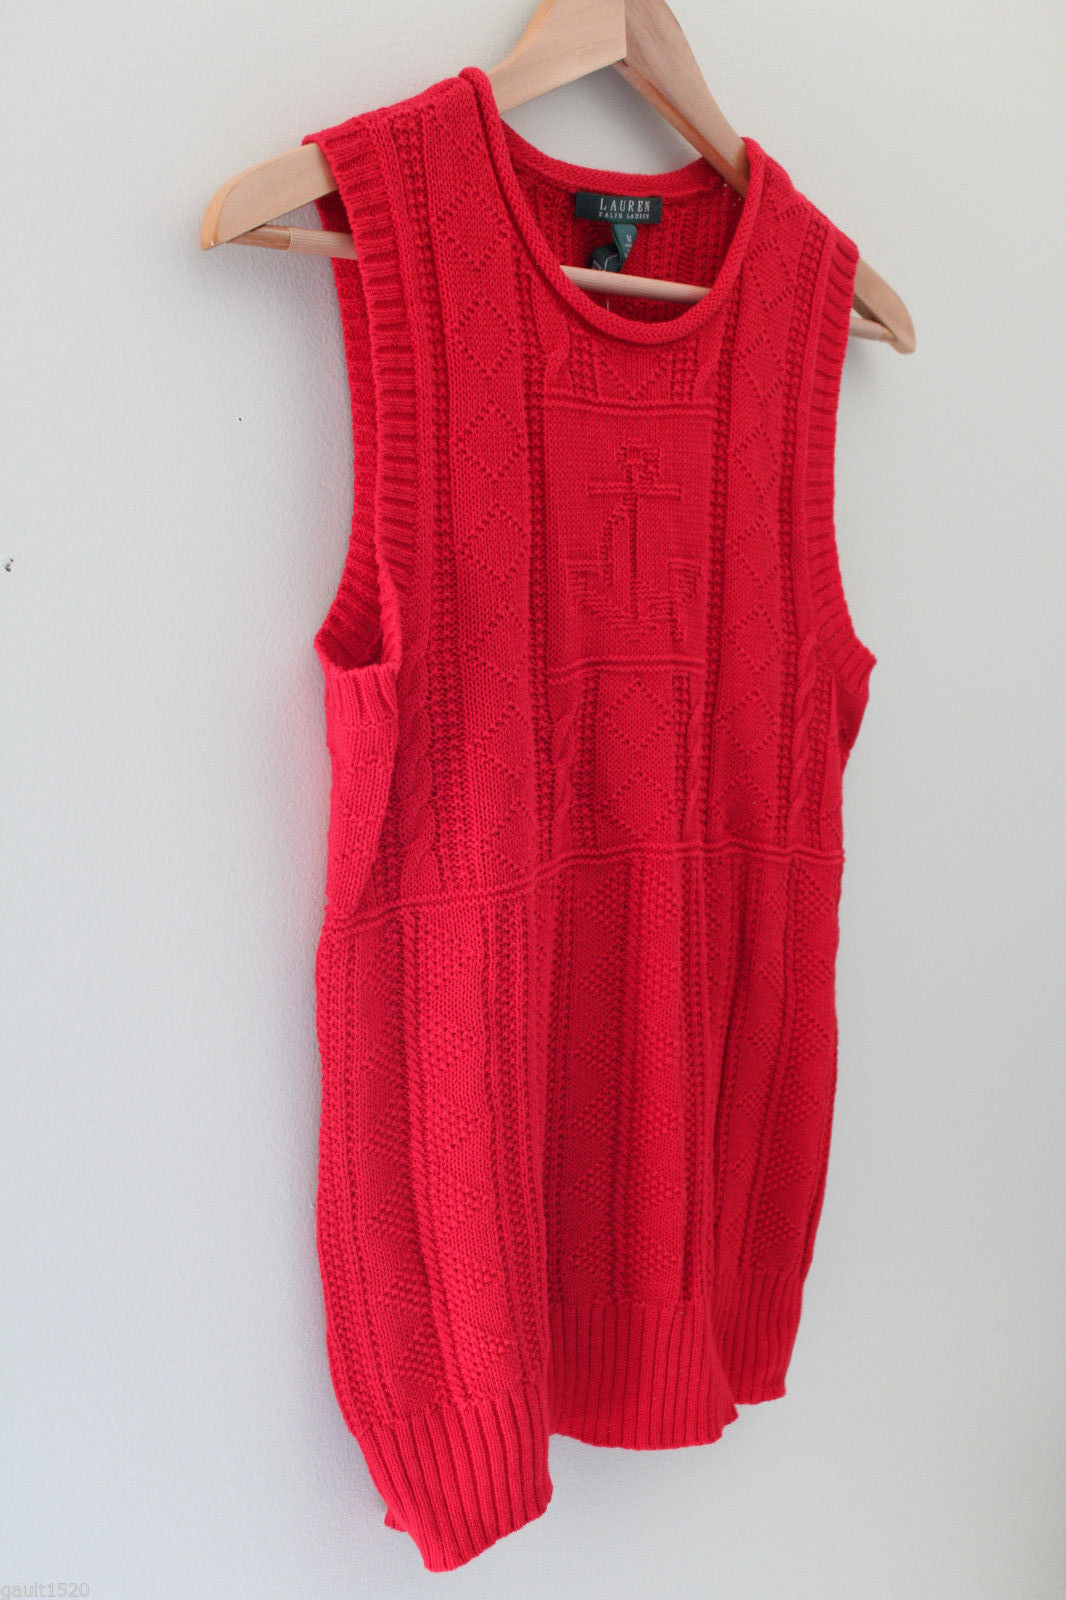 NWT LAUREN Ralph Lauren Red Linen Cotton Knit Sleeveless Sweater Vest M $100 image 3